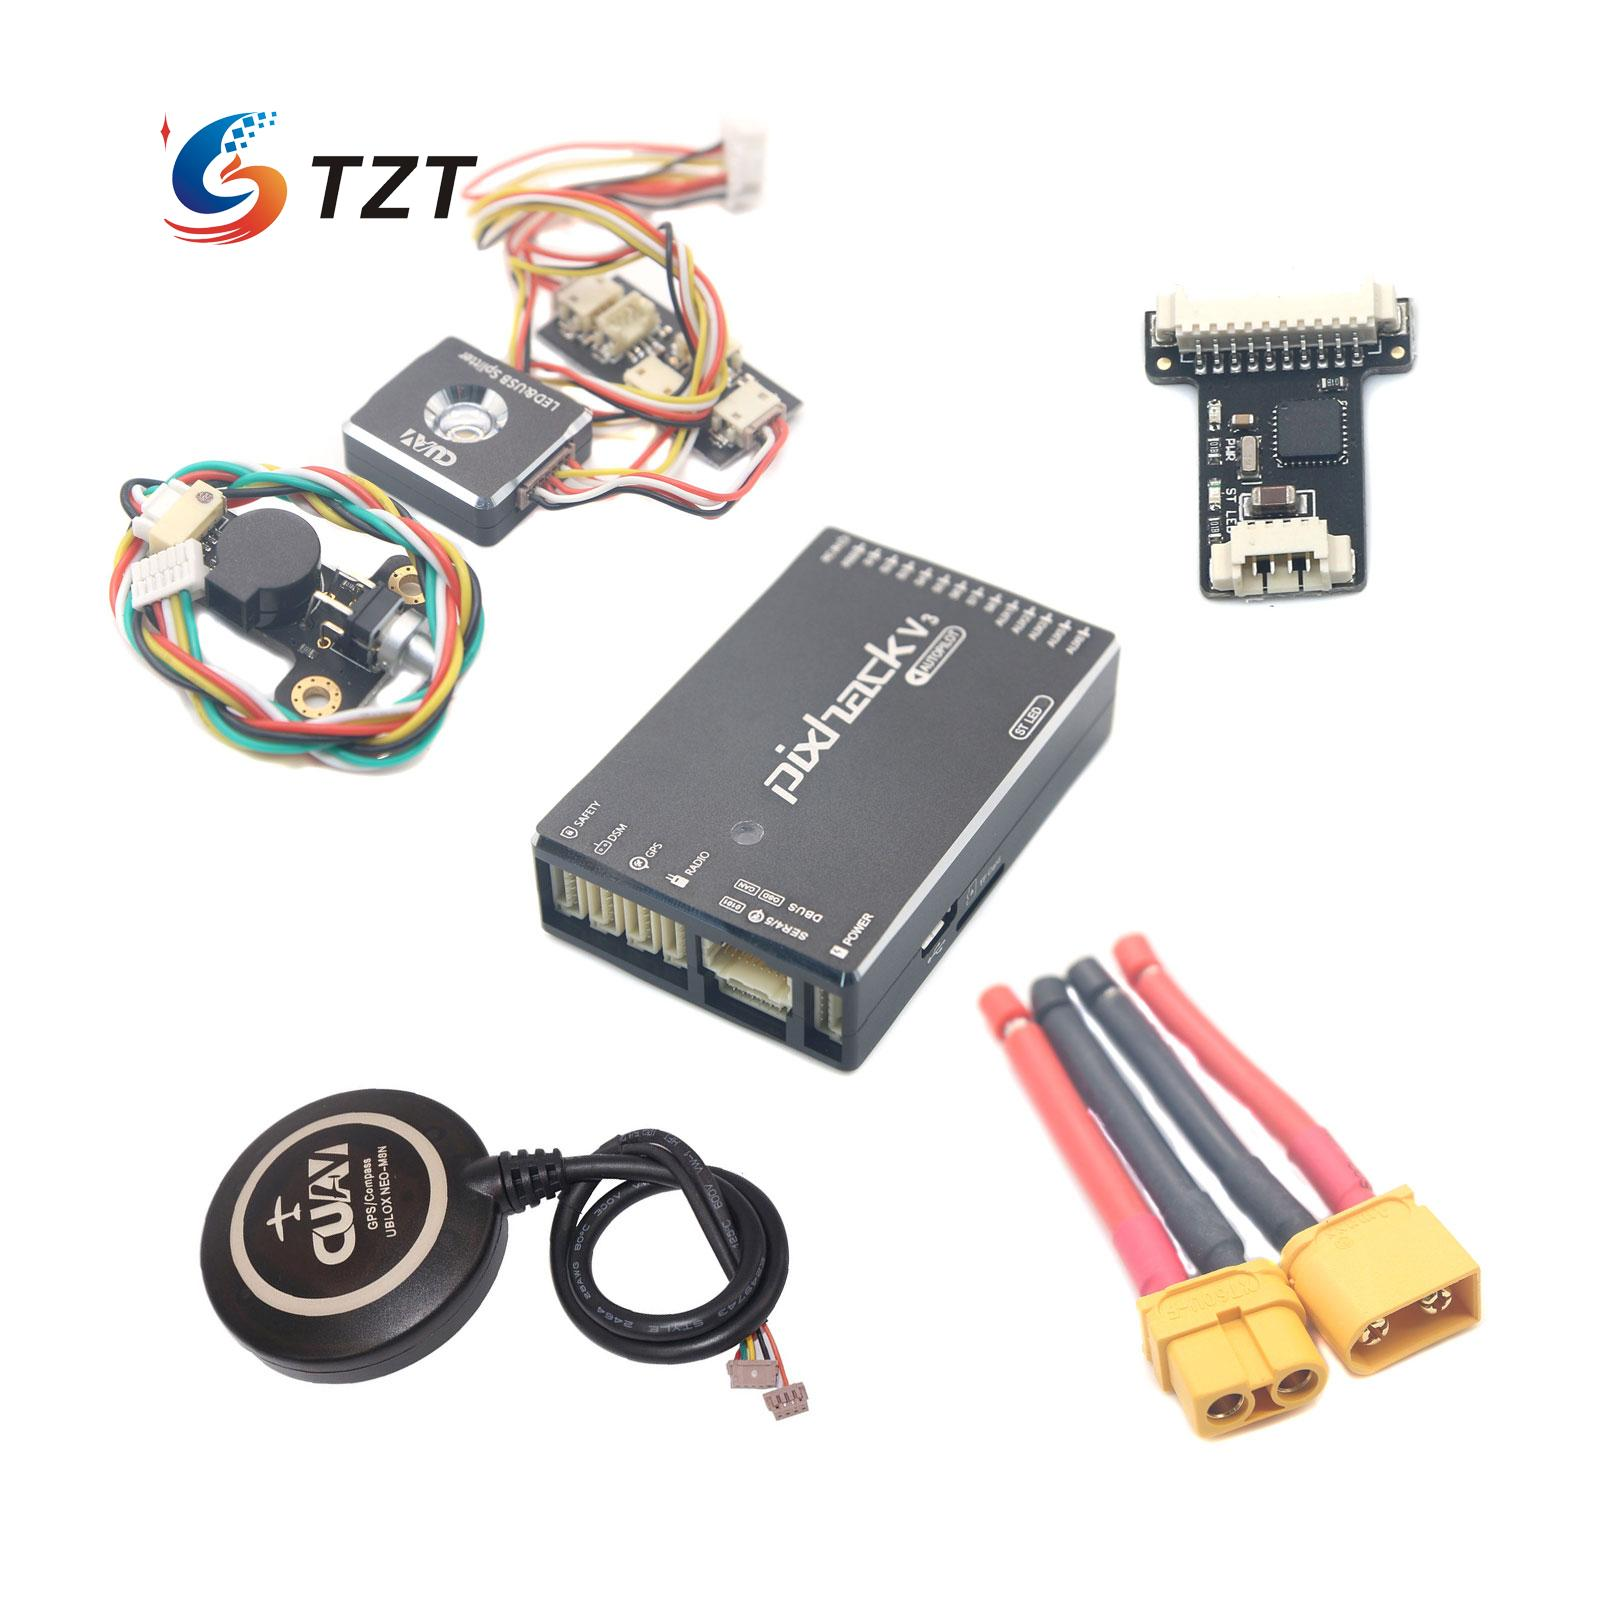 CUAV Pixhack V3C Flight Controller with M8N GPS LED Board PPM Encoder TF Card for Drone